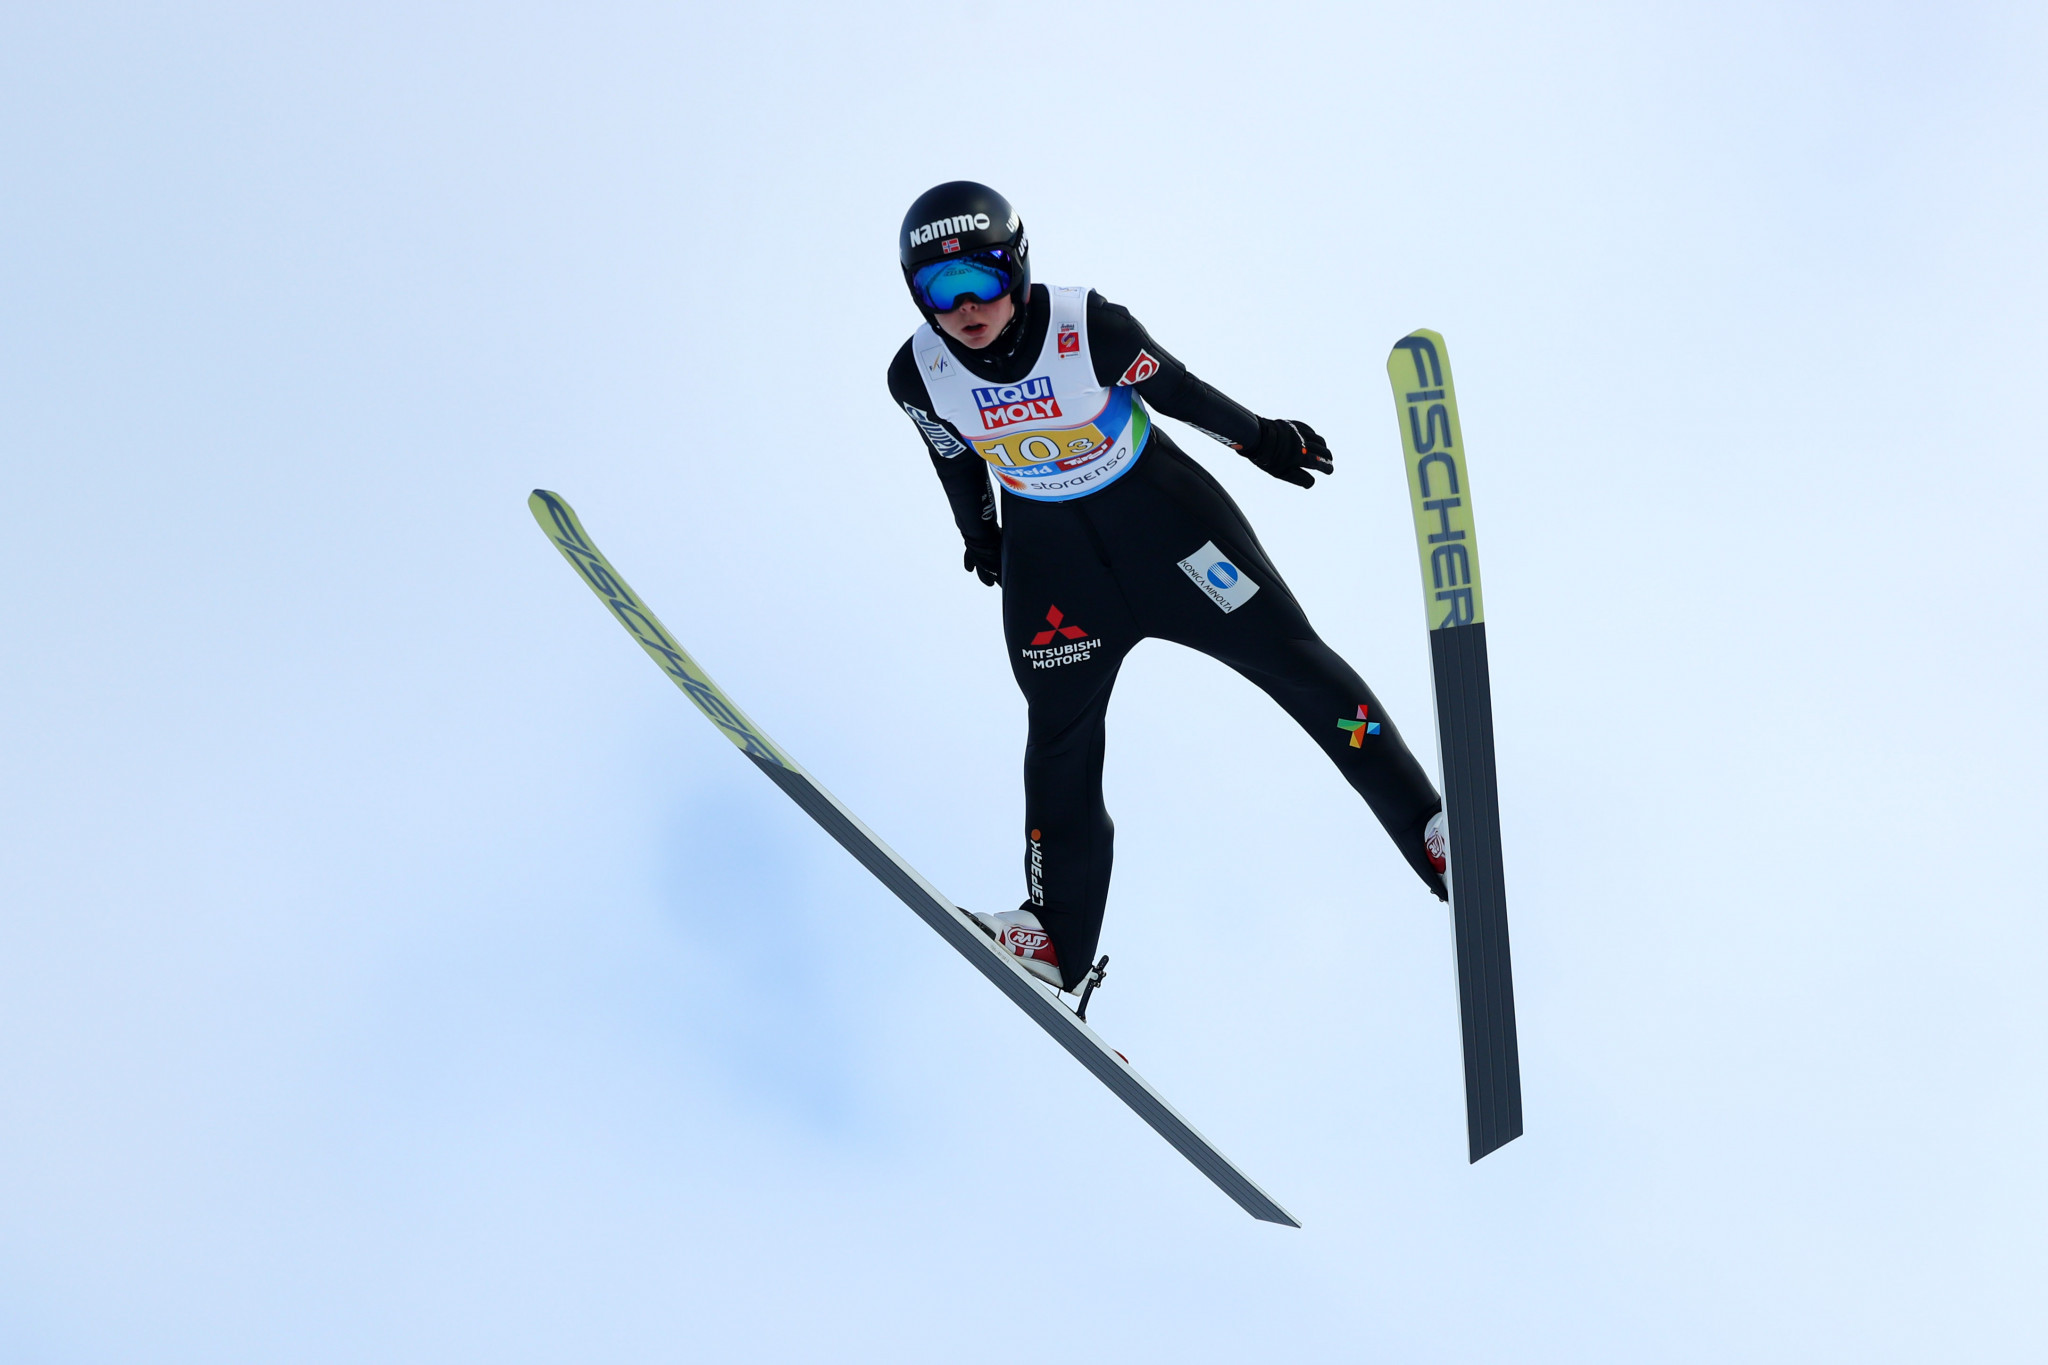 Norway's Maren Lundby delighted the home crowd with victory in the women's event ©Getty Images